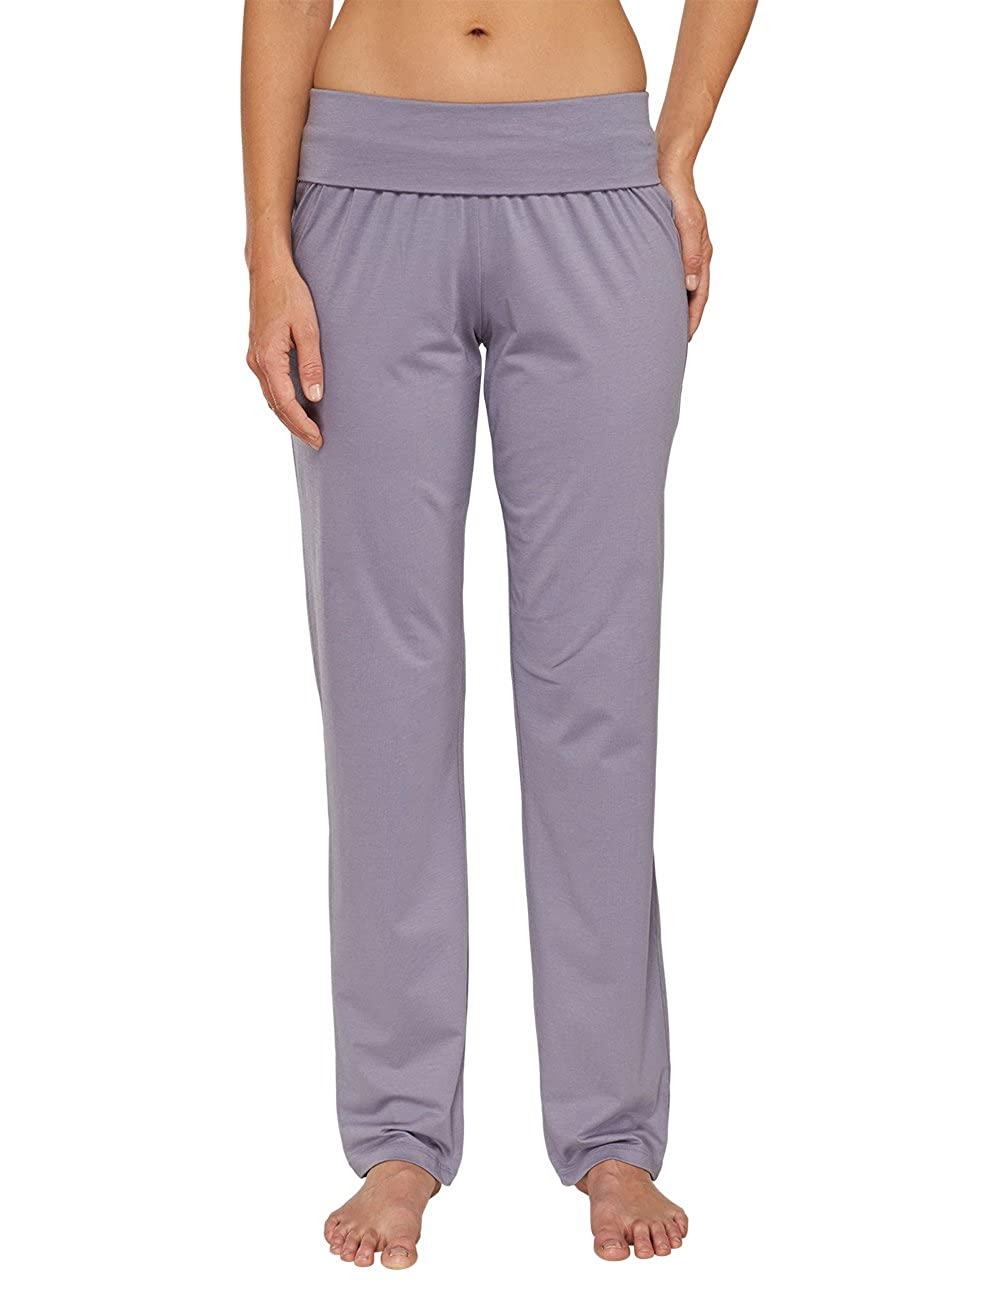 TALLA 42. Schiesser Mix & Relax Jersey Hose Lang - Parte Inferior del Pijama Mujer